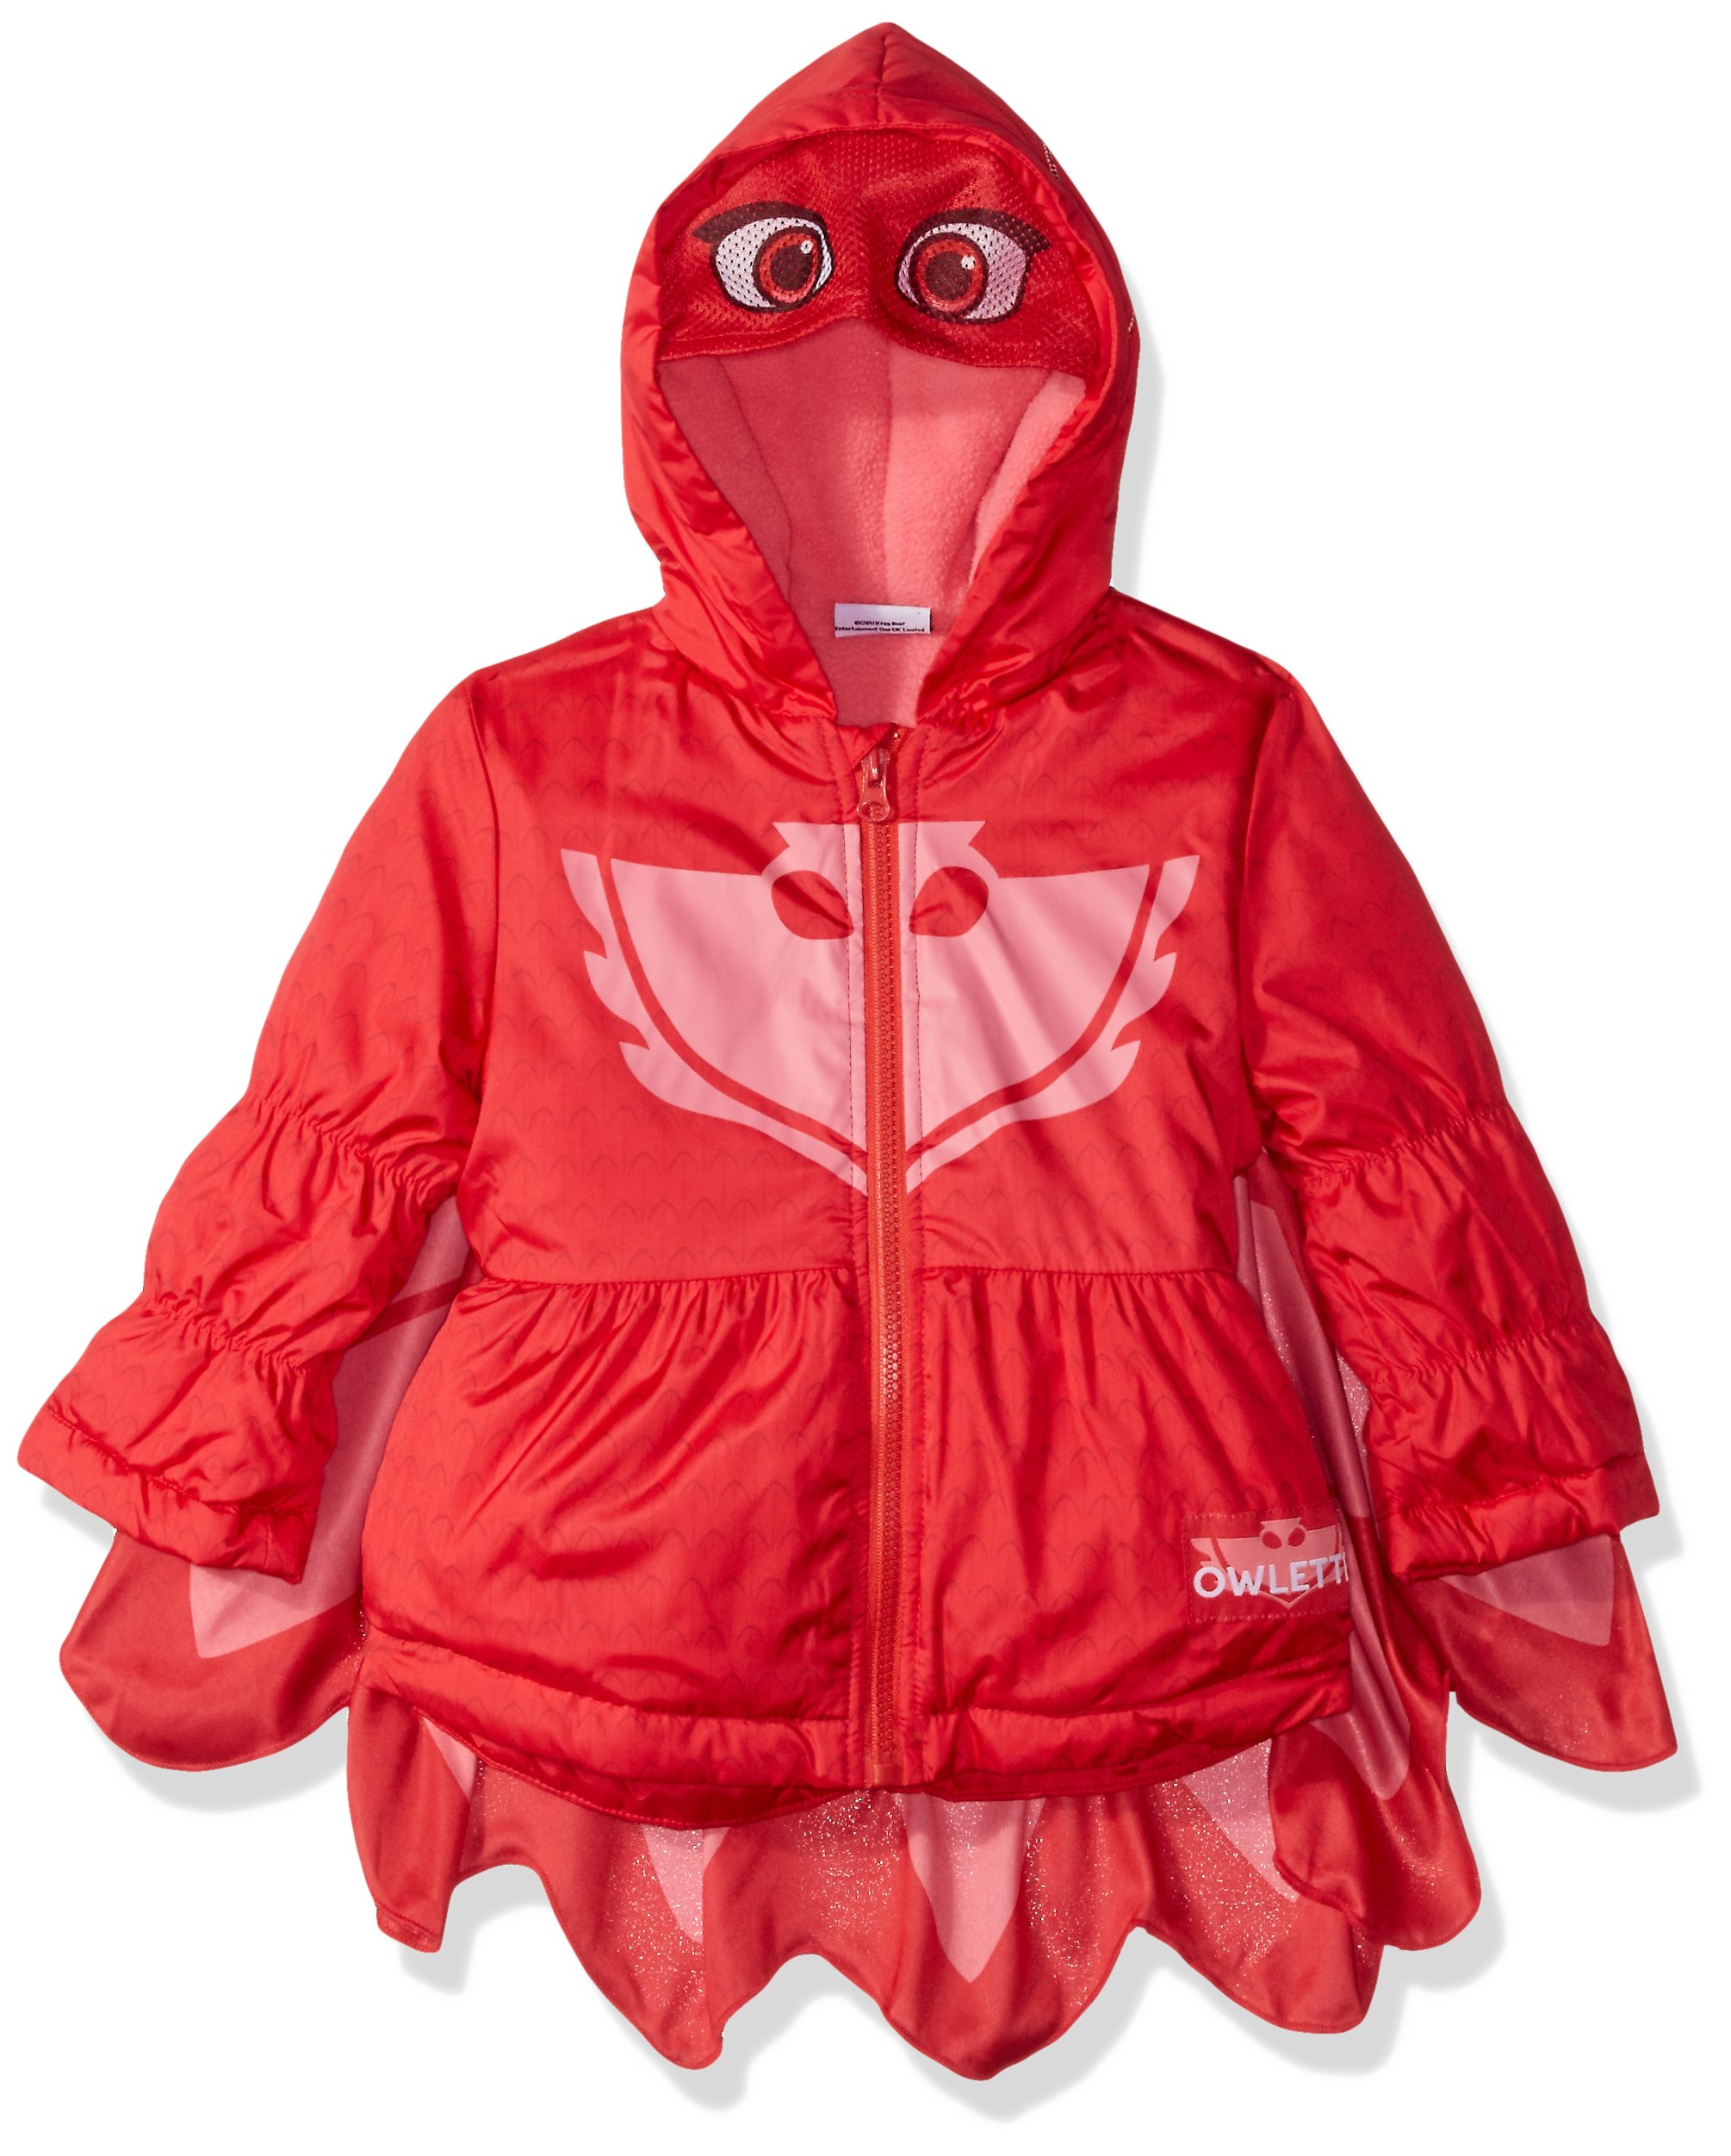 PJMASKS Big Girls Owlette Puffer Coat, Red/Pink, 3T